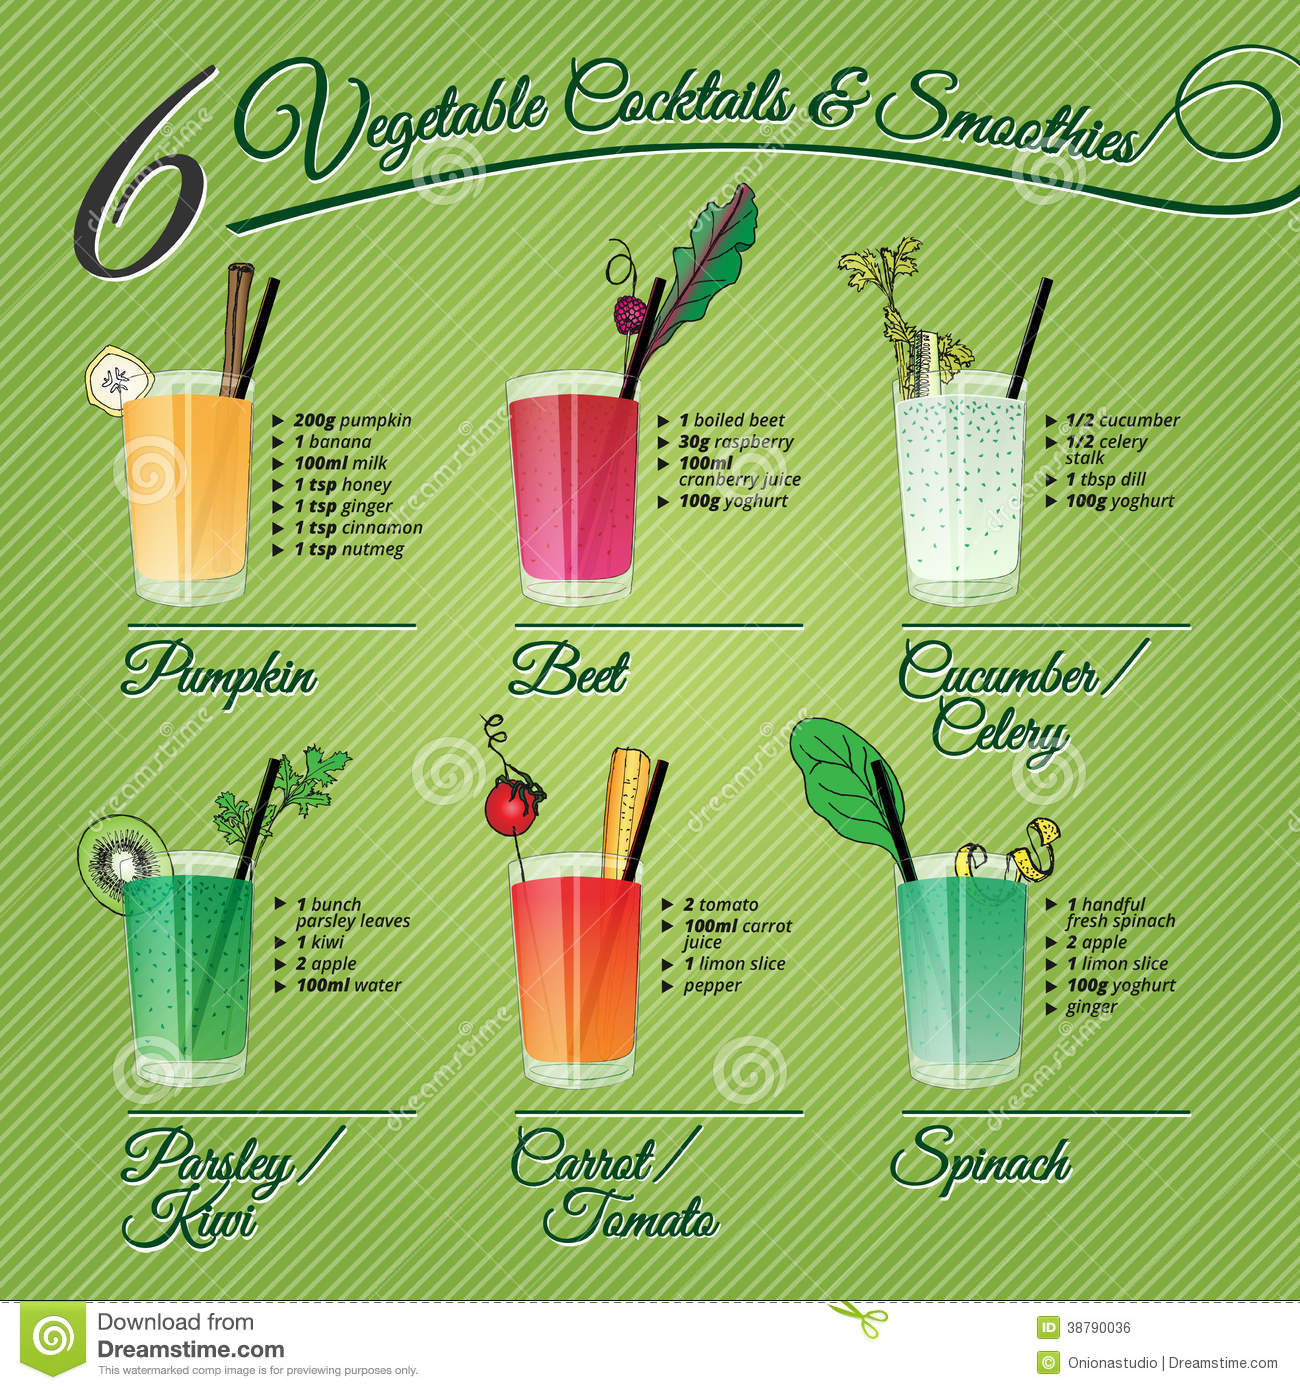 is a tomato a fruit or vegetable healthy vegetable and fruit smoothie recipes